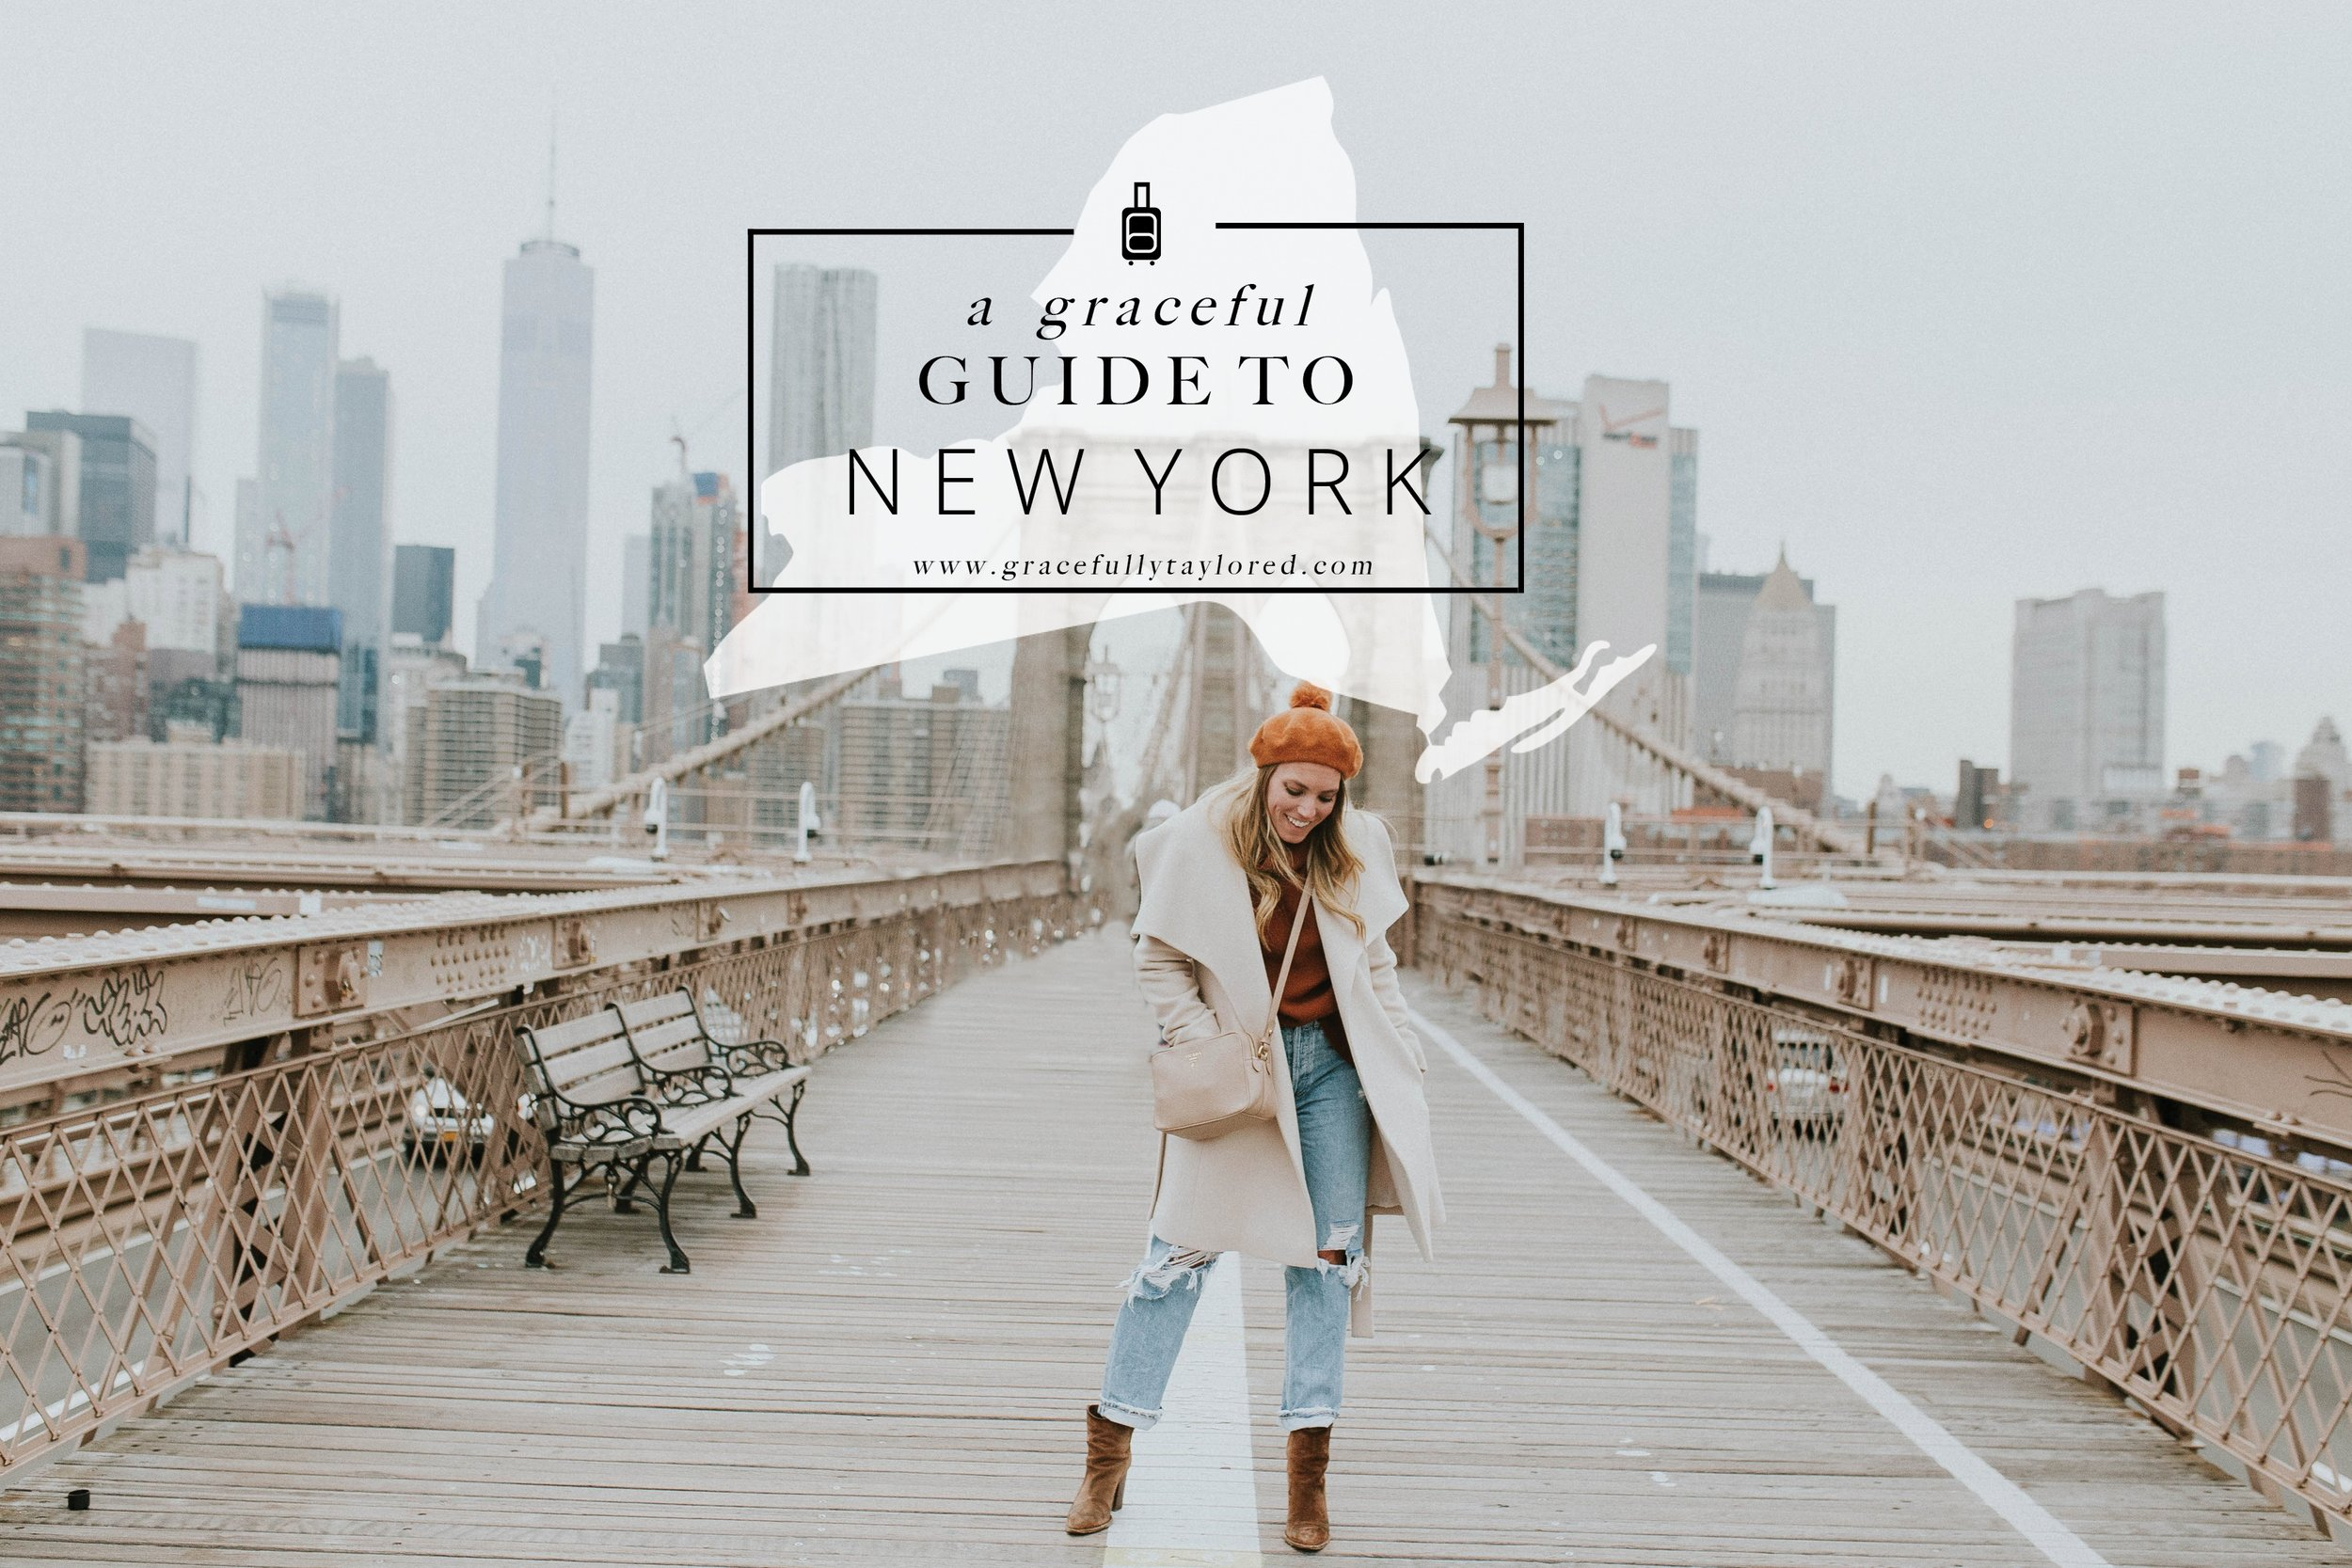 A Graceful Guide to New York 1.jpg